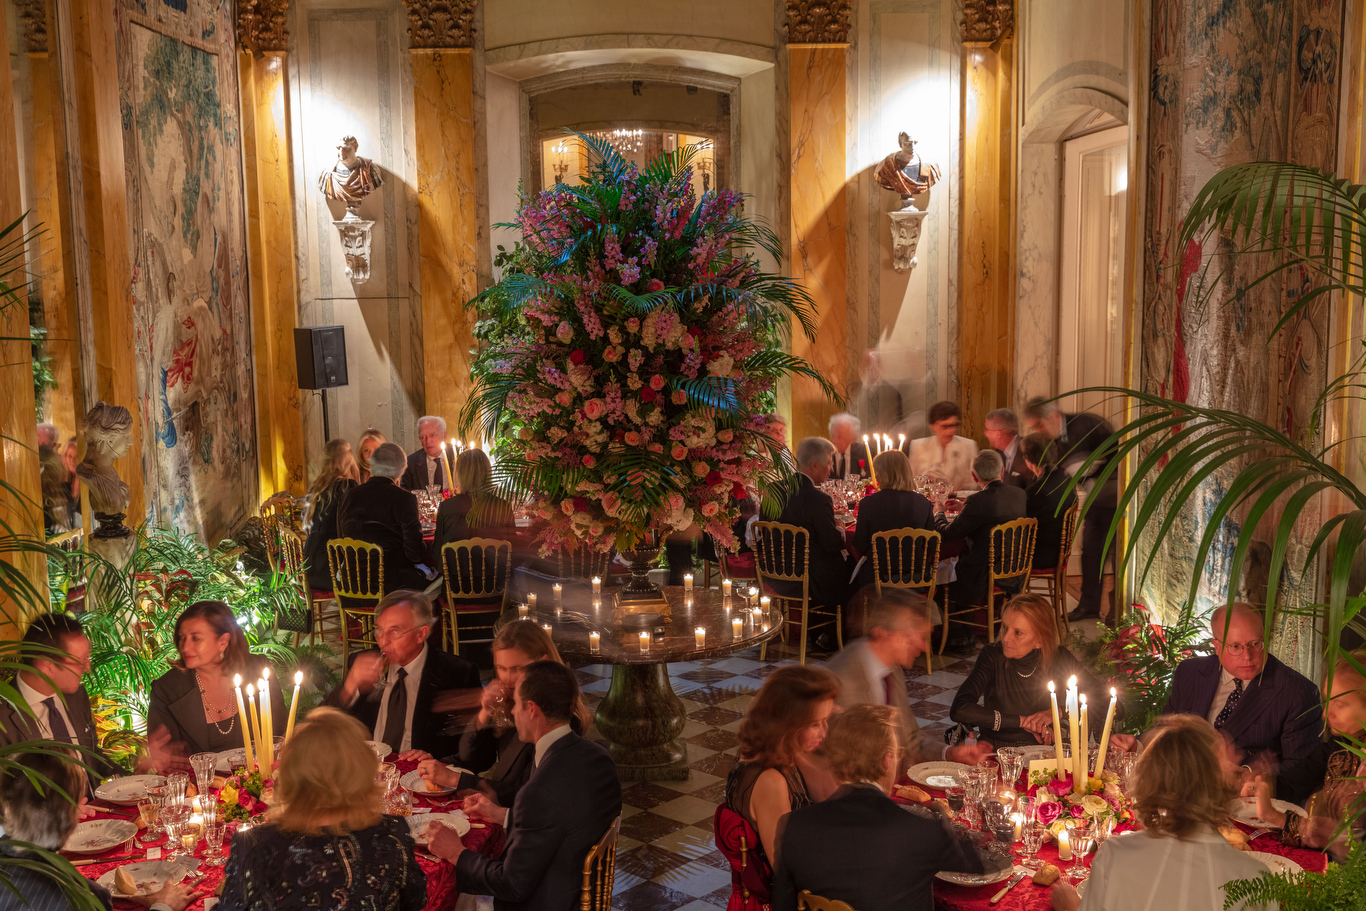 Jacqueline de Ribes opened her Paris home to celebrate Ralph Lauren with a private dinner.